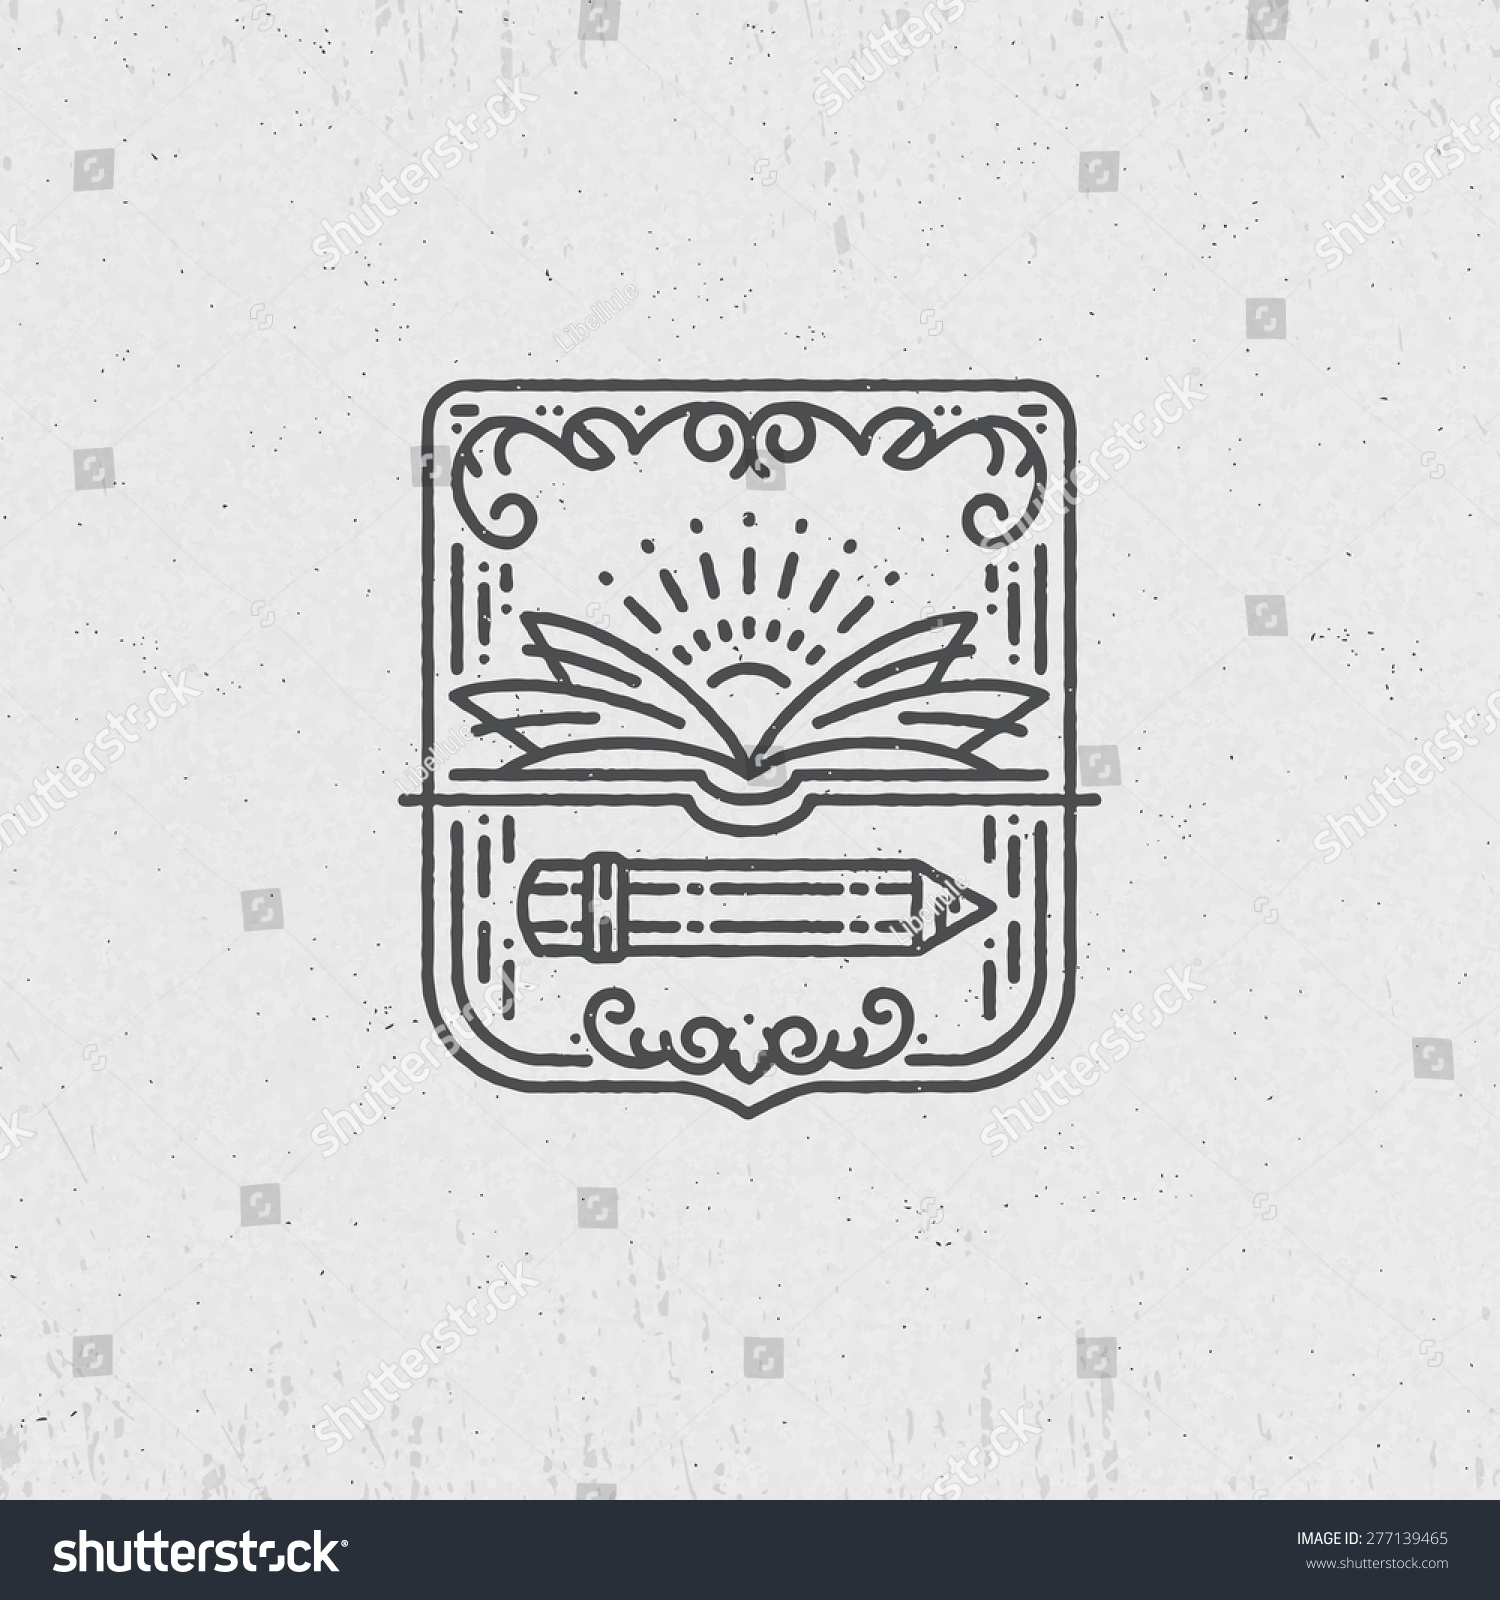 Lineart symbol knowledge education school art stock vector lineart symbol for knowledge education school art graphical logo label biocorpaavc Image collections